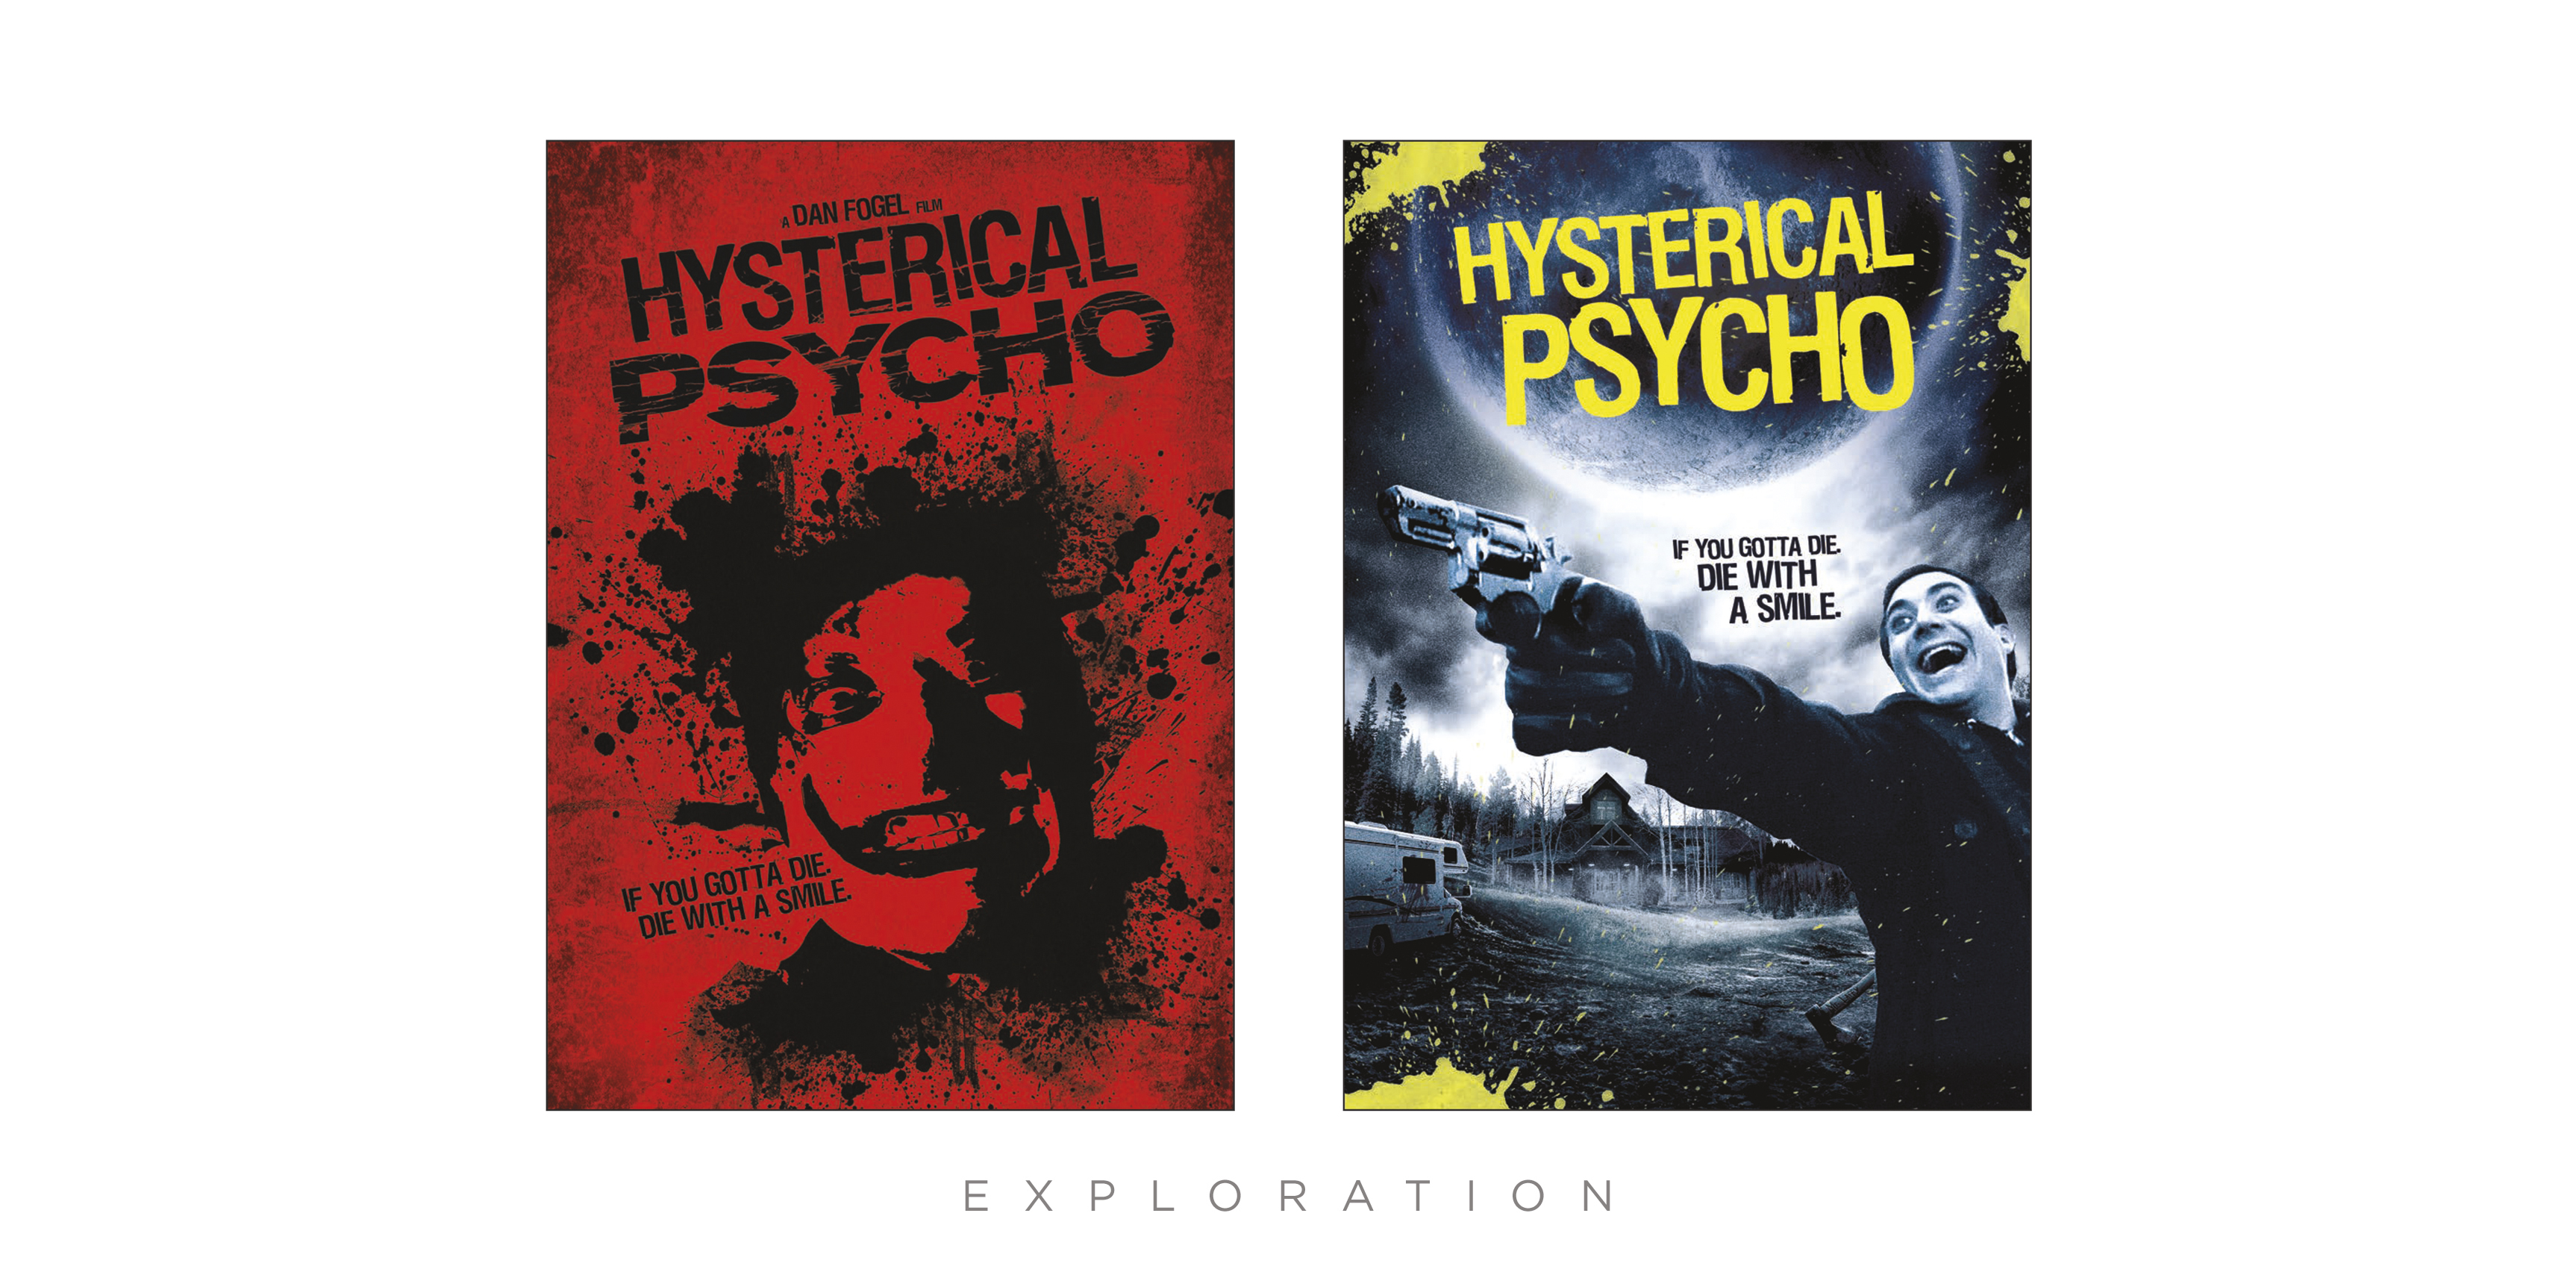 hps_hysterical_psycho_exploration